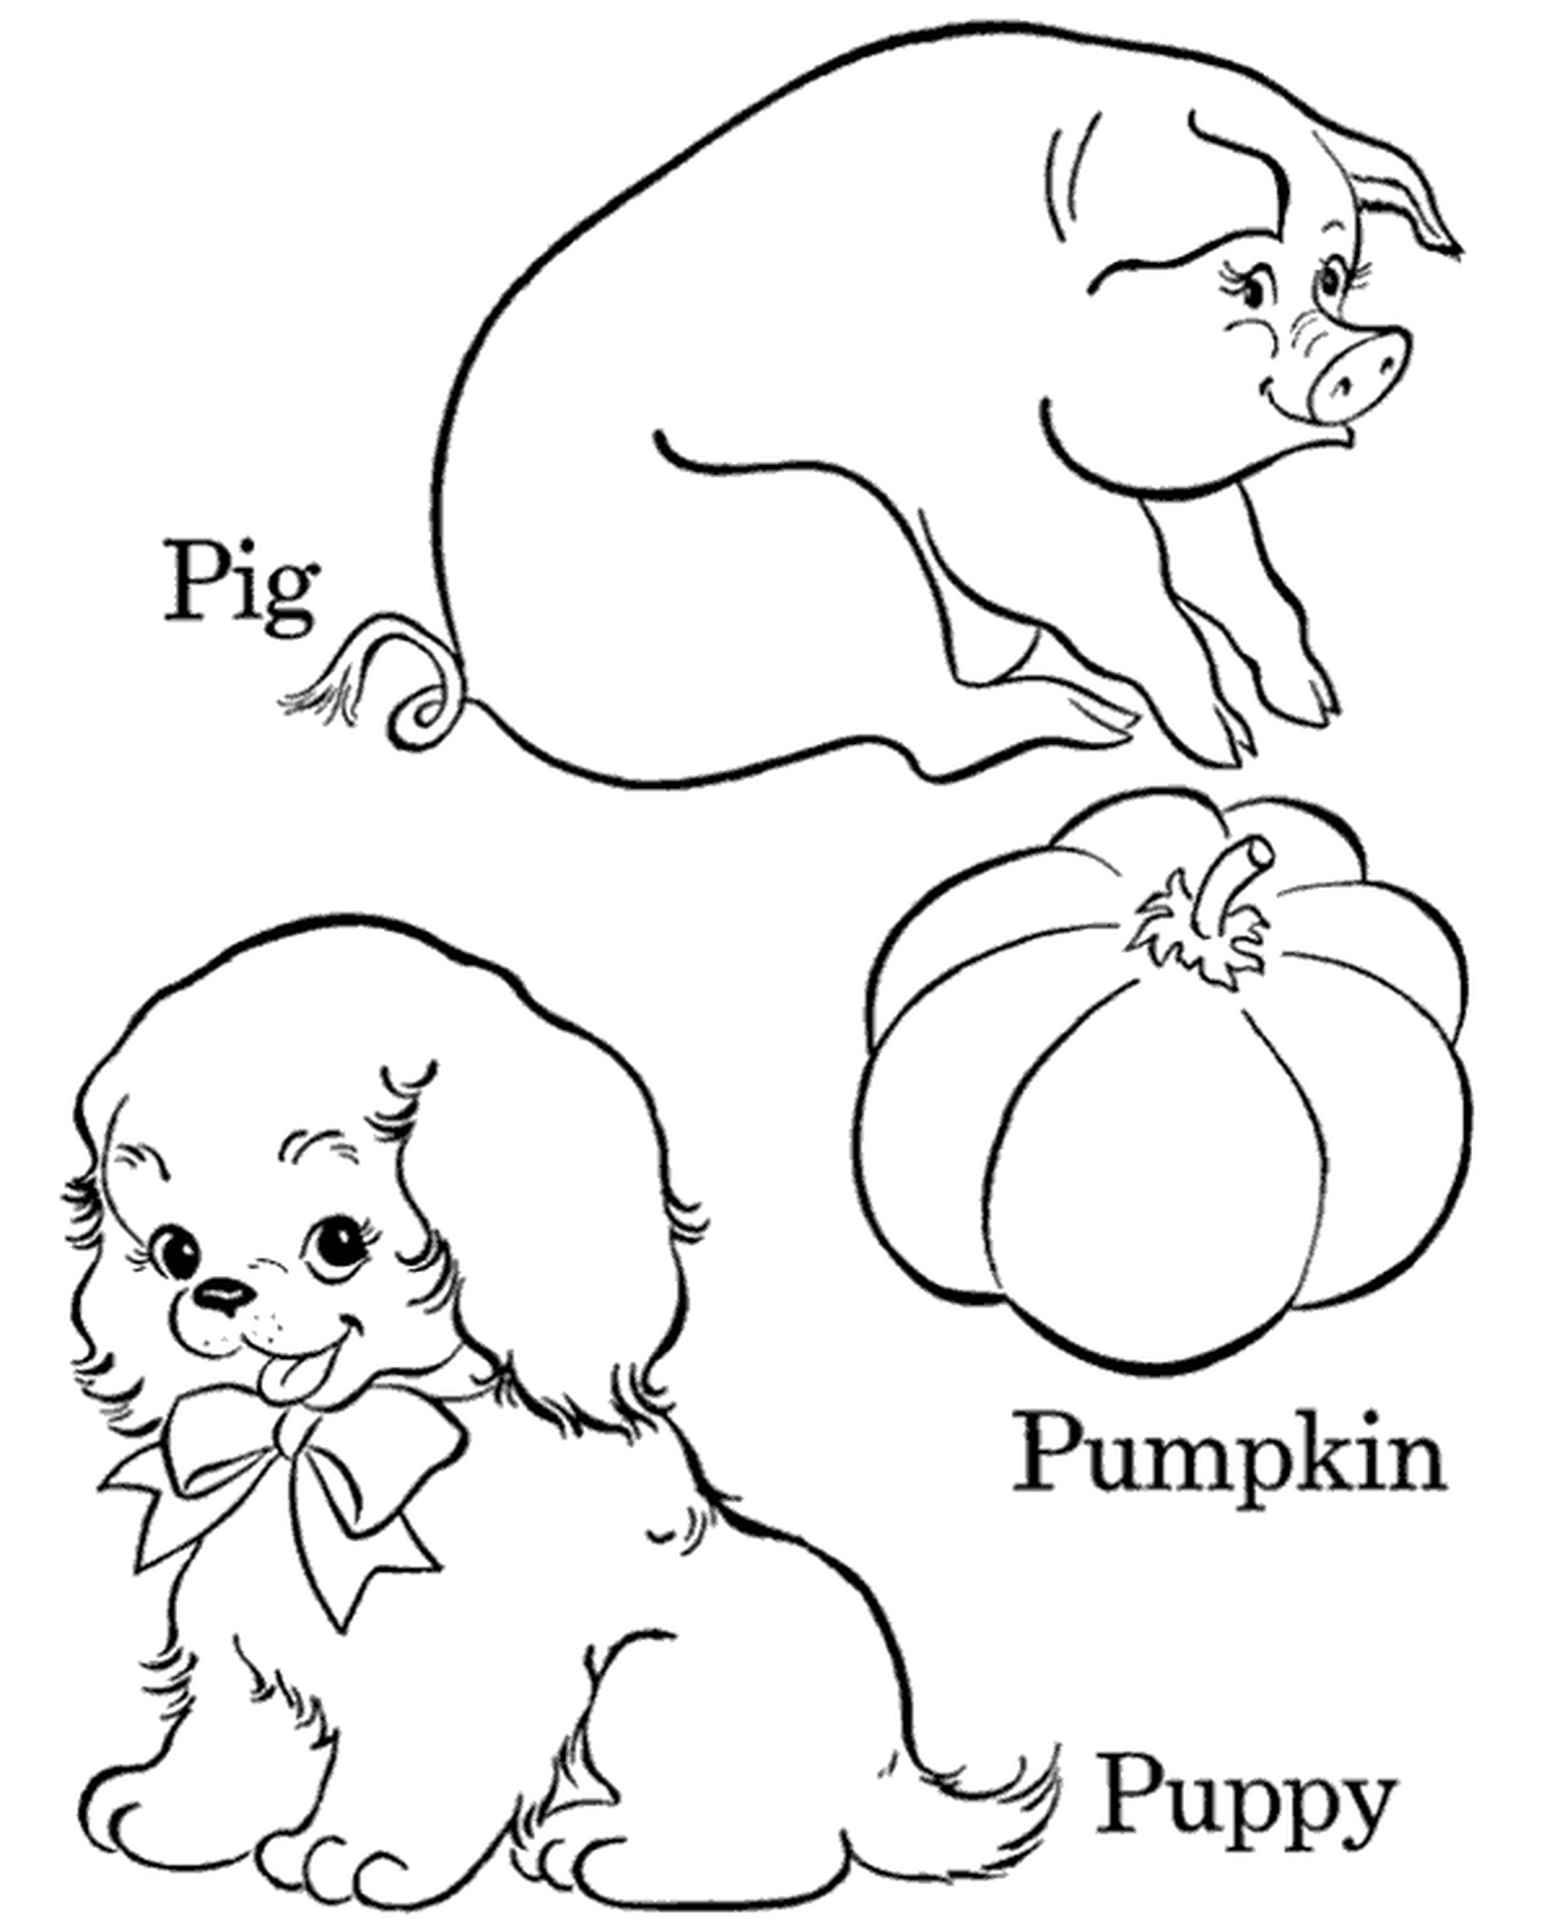 Puppy, Pig And Pumpkin Coloring Page For Kids